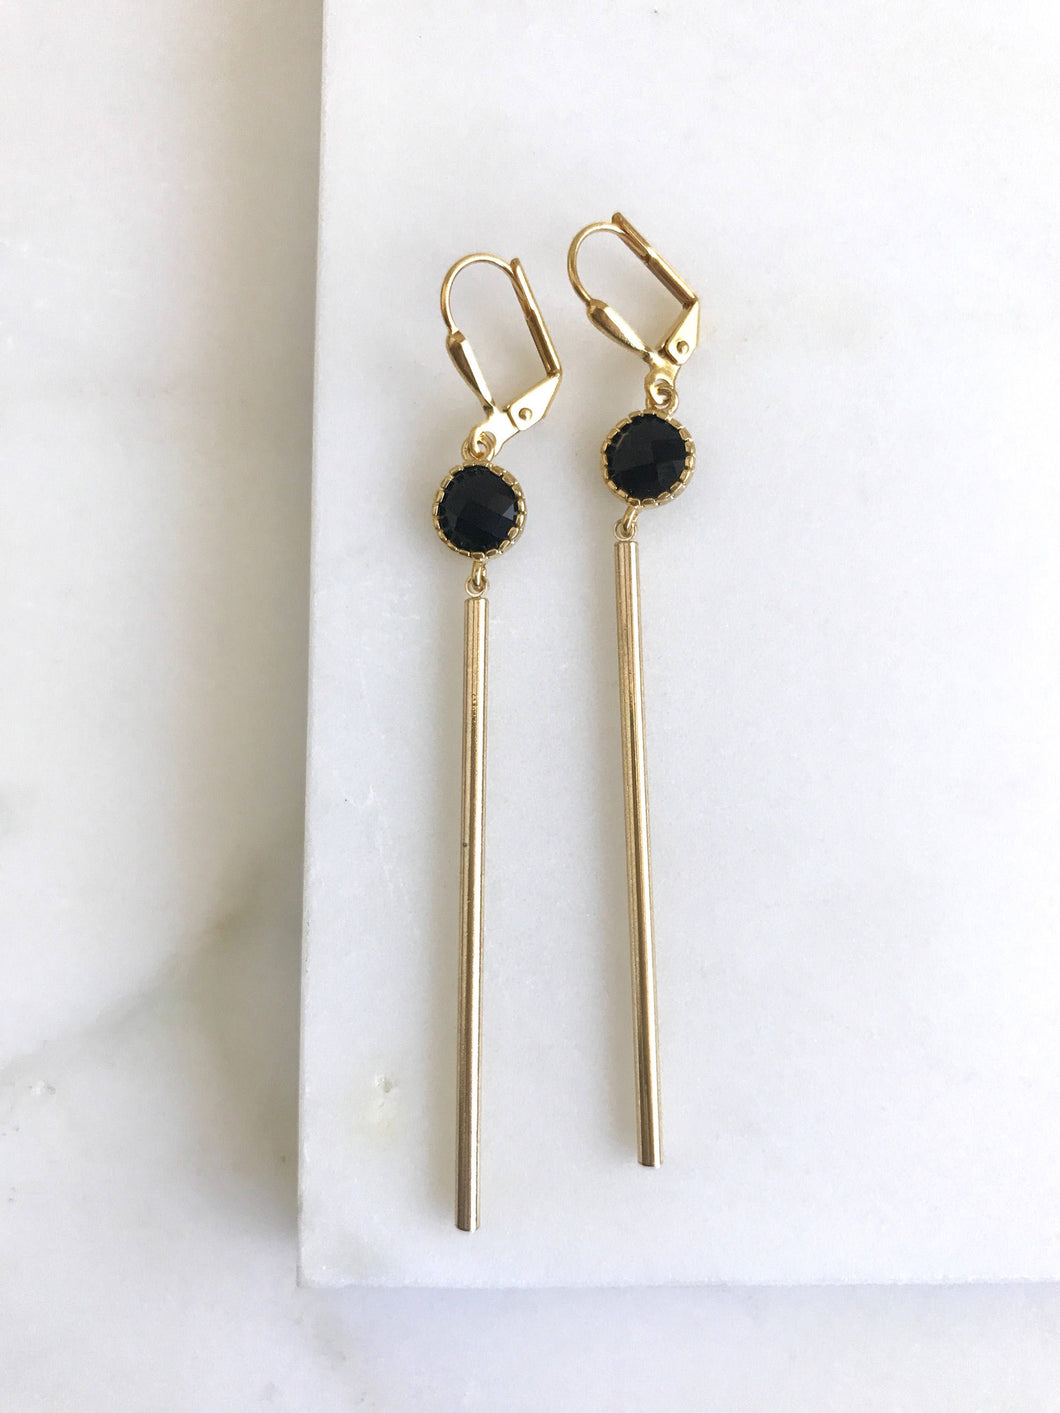 Long Bar Earrings in Black and Gold. Black Stone and Bar Earrings. Long Gold Dangle Earrings. Jewelry.